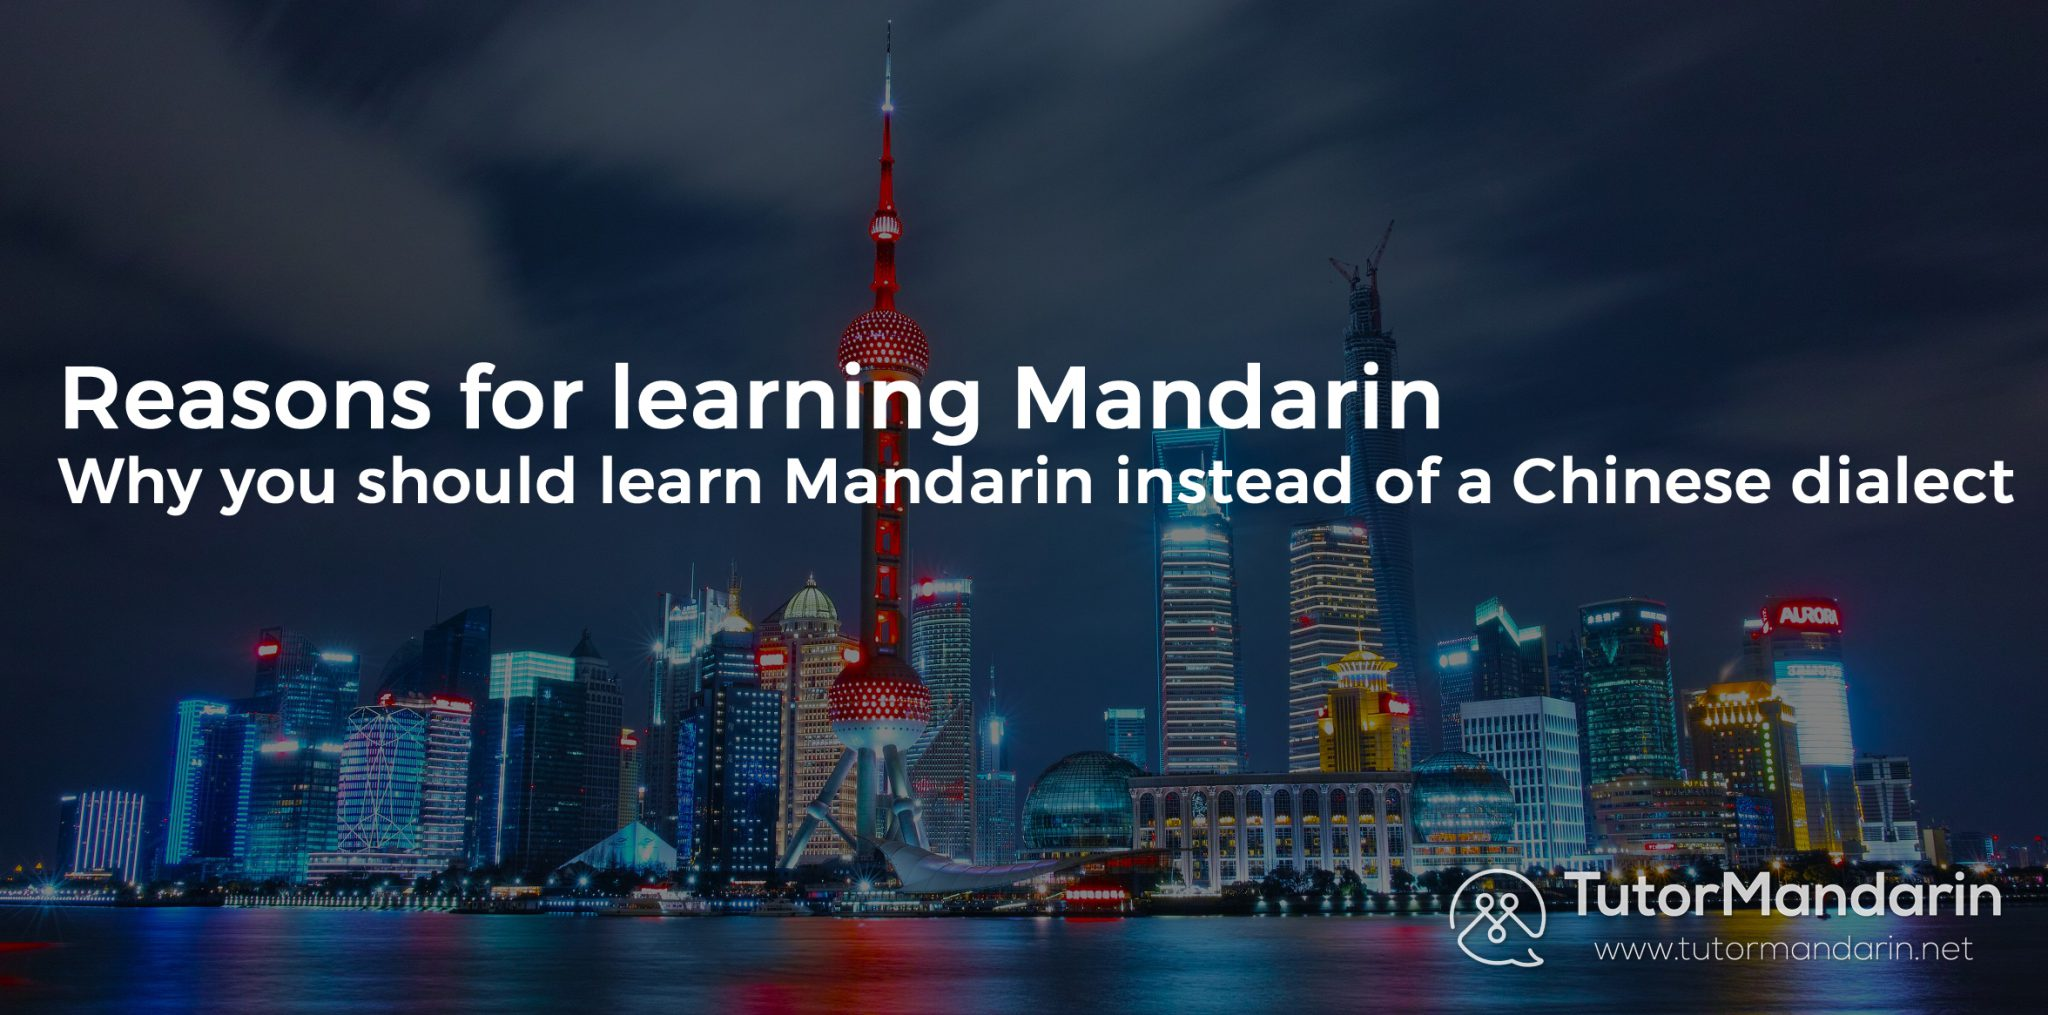 TutorMandarin - Reasons for learning Mandarin